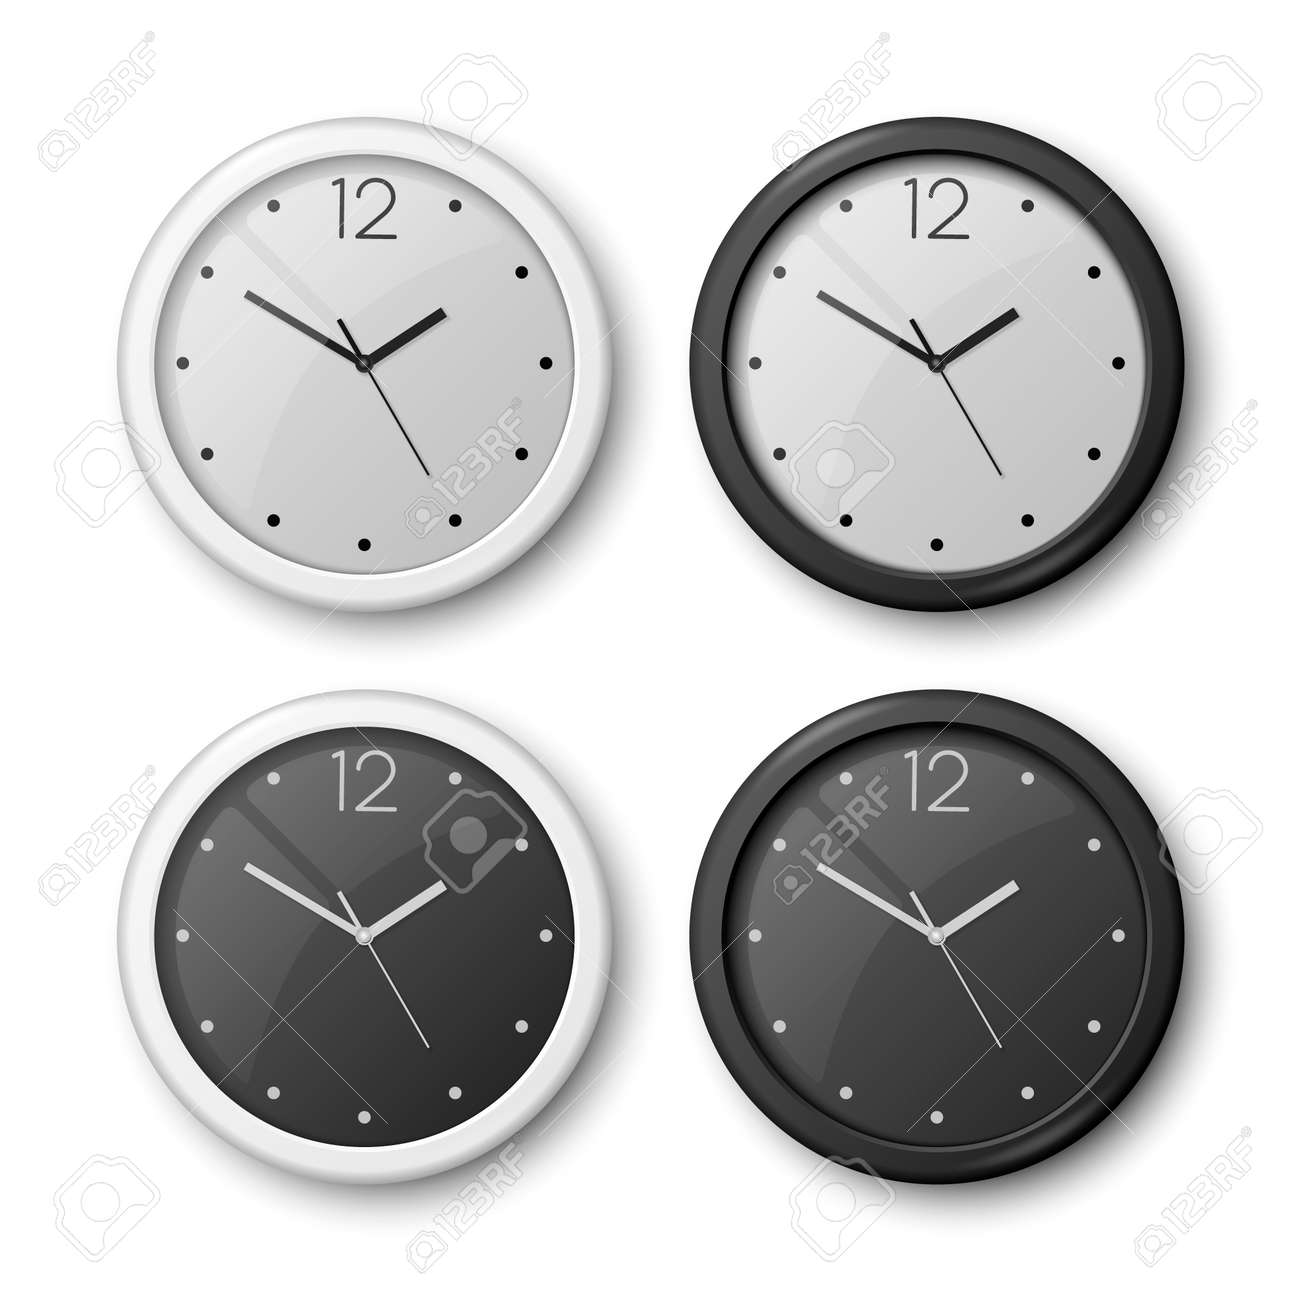 Vector 3d Realistic White, Black Wall Office Clock Icon Set Isolated. White Dial, Black Dial. Design Template of Wall Clock Closeup. Mock-up for Branding and Advertise. Top or Front View - 173532279